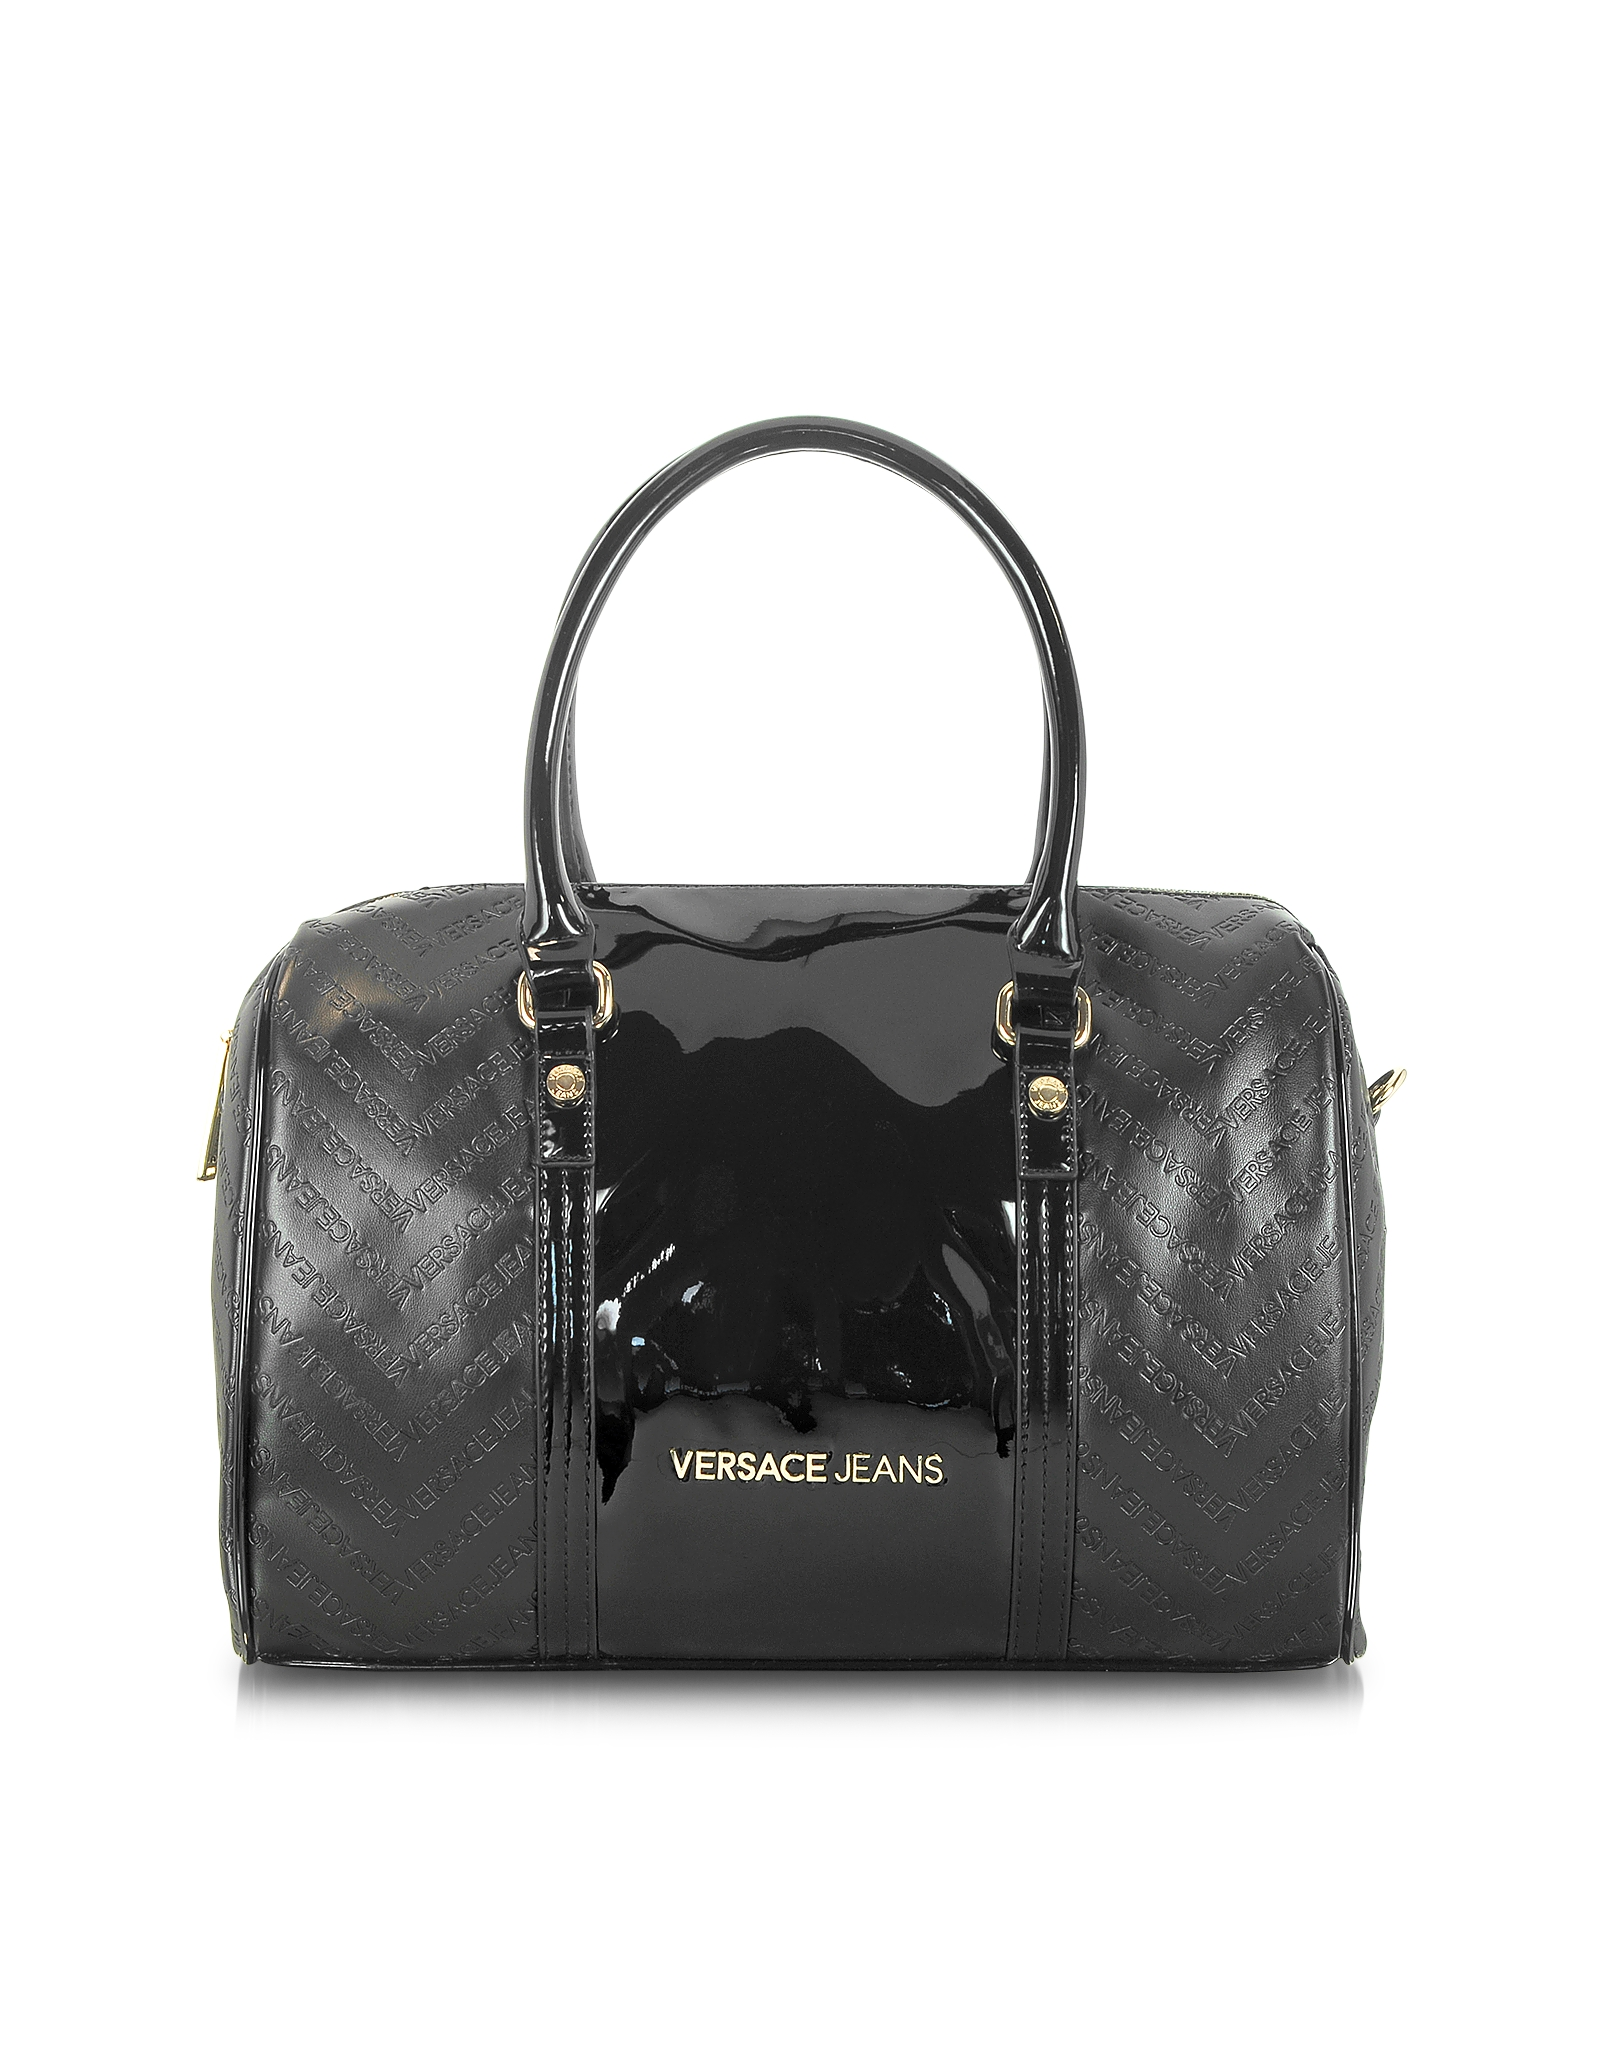 2e987bf1b8a9 Lyst - Versace Jeans Black Signature Eco Patent Leather Satchel Bag ...